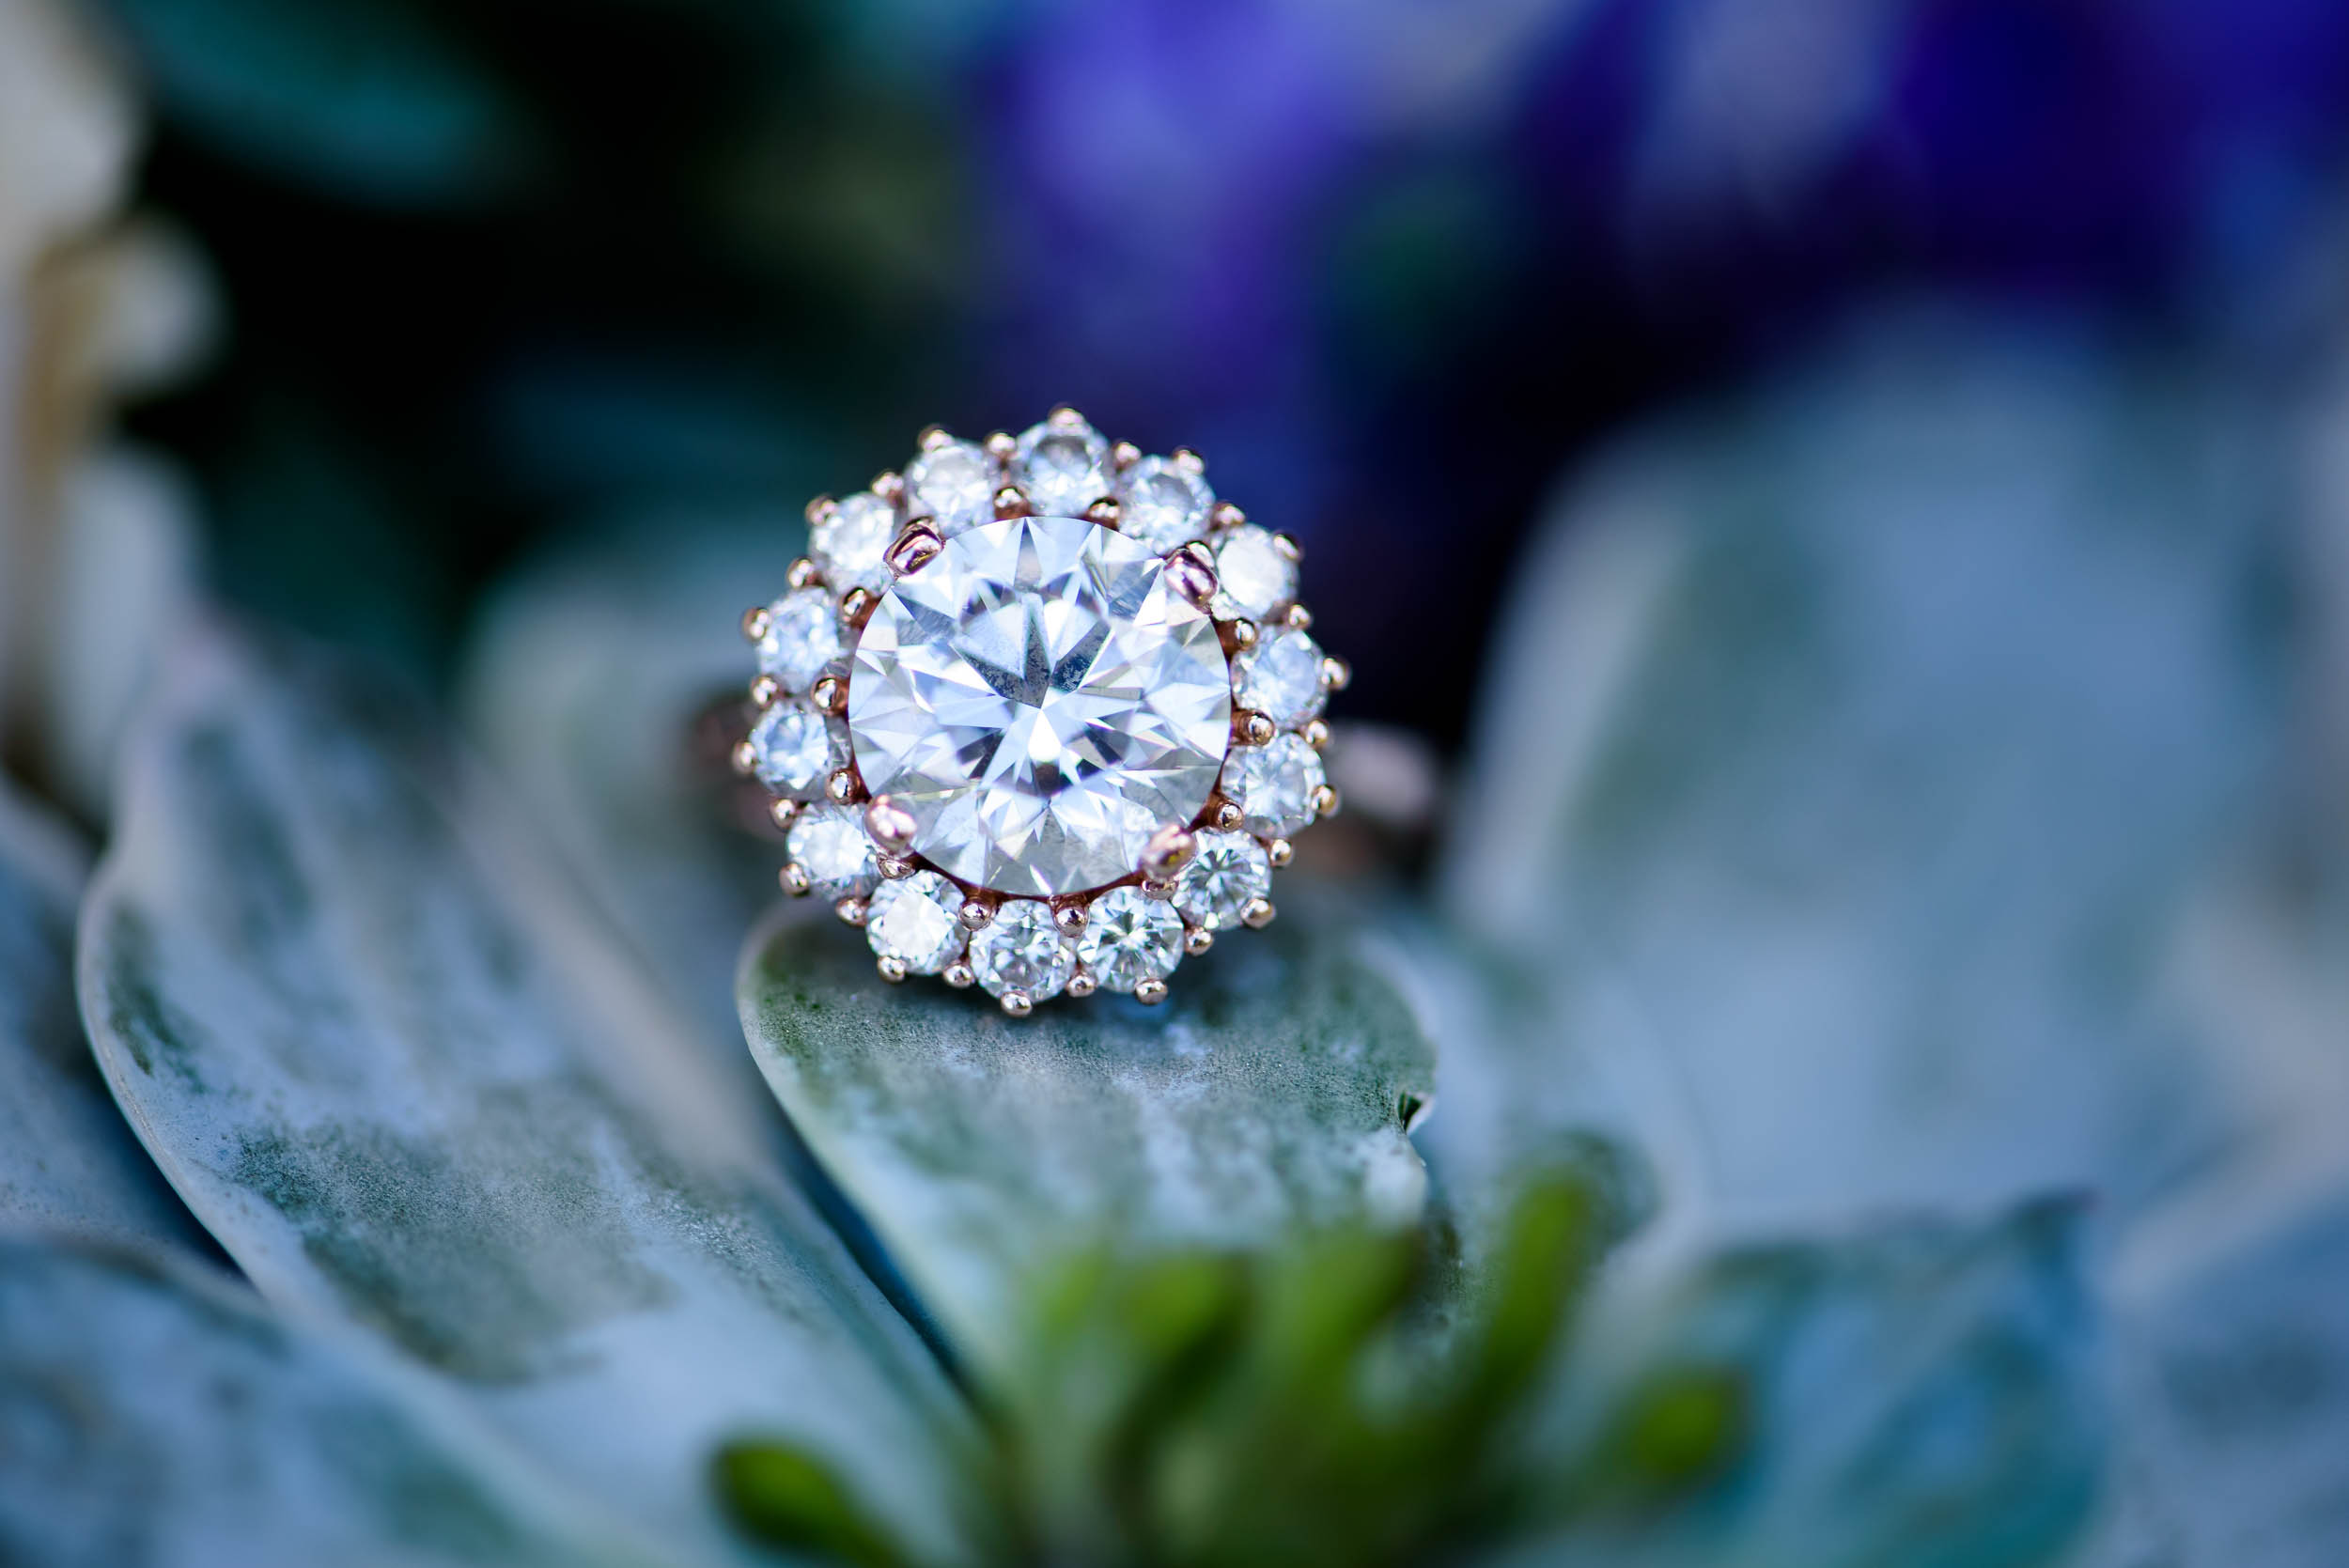 Engagement ring photo for Grand Geneve Resort Fall Chicago Wedding captured by J. Brown Photography. Visit jbrownphotography.com for more wedding inspiration!